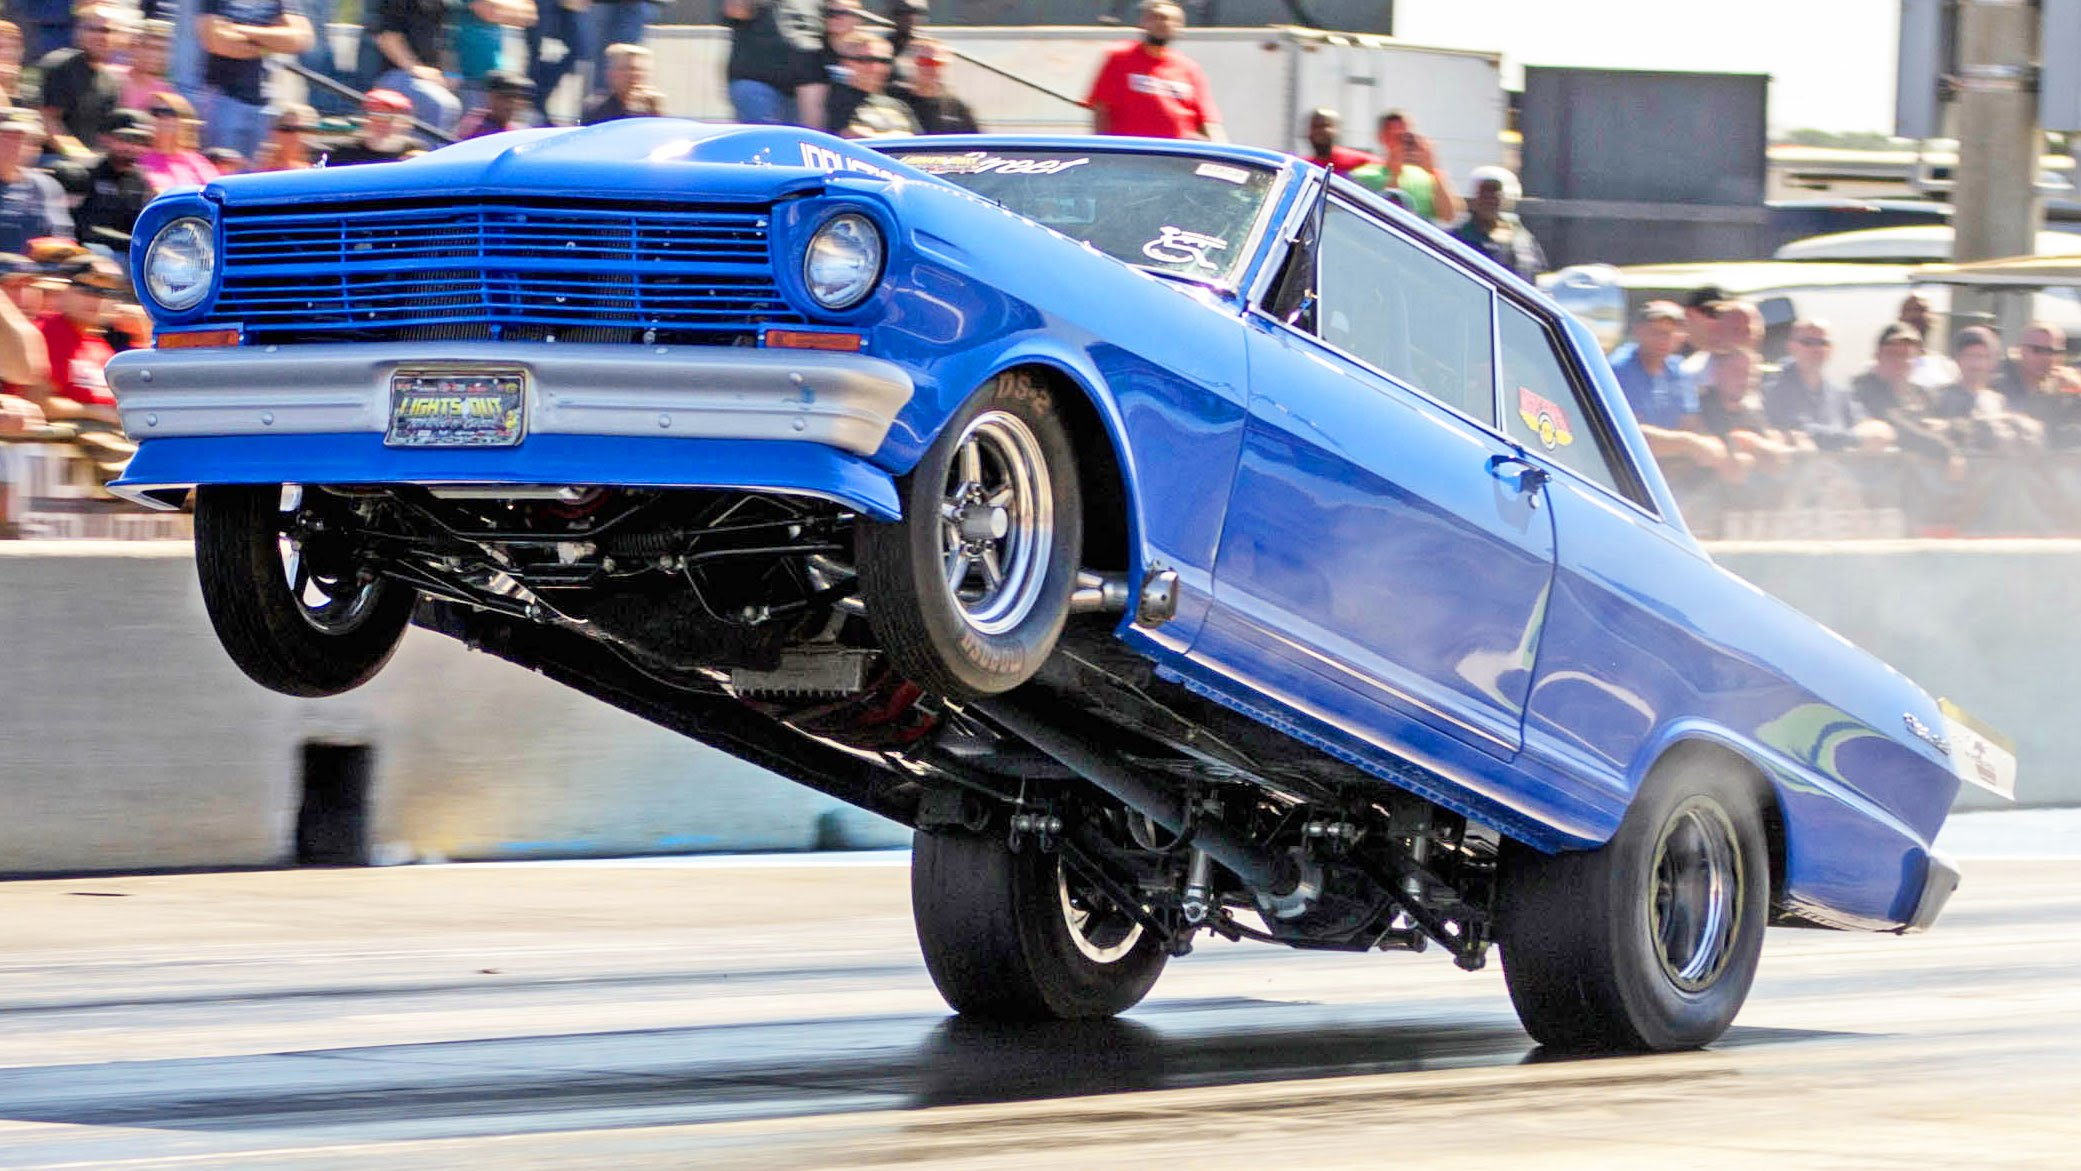 Check Out The Craziest Wheelies From Awesome Light 7 Drag Racing Event